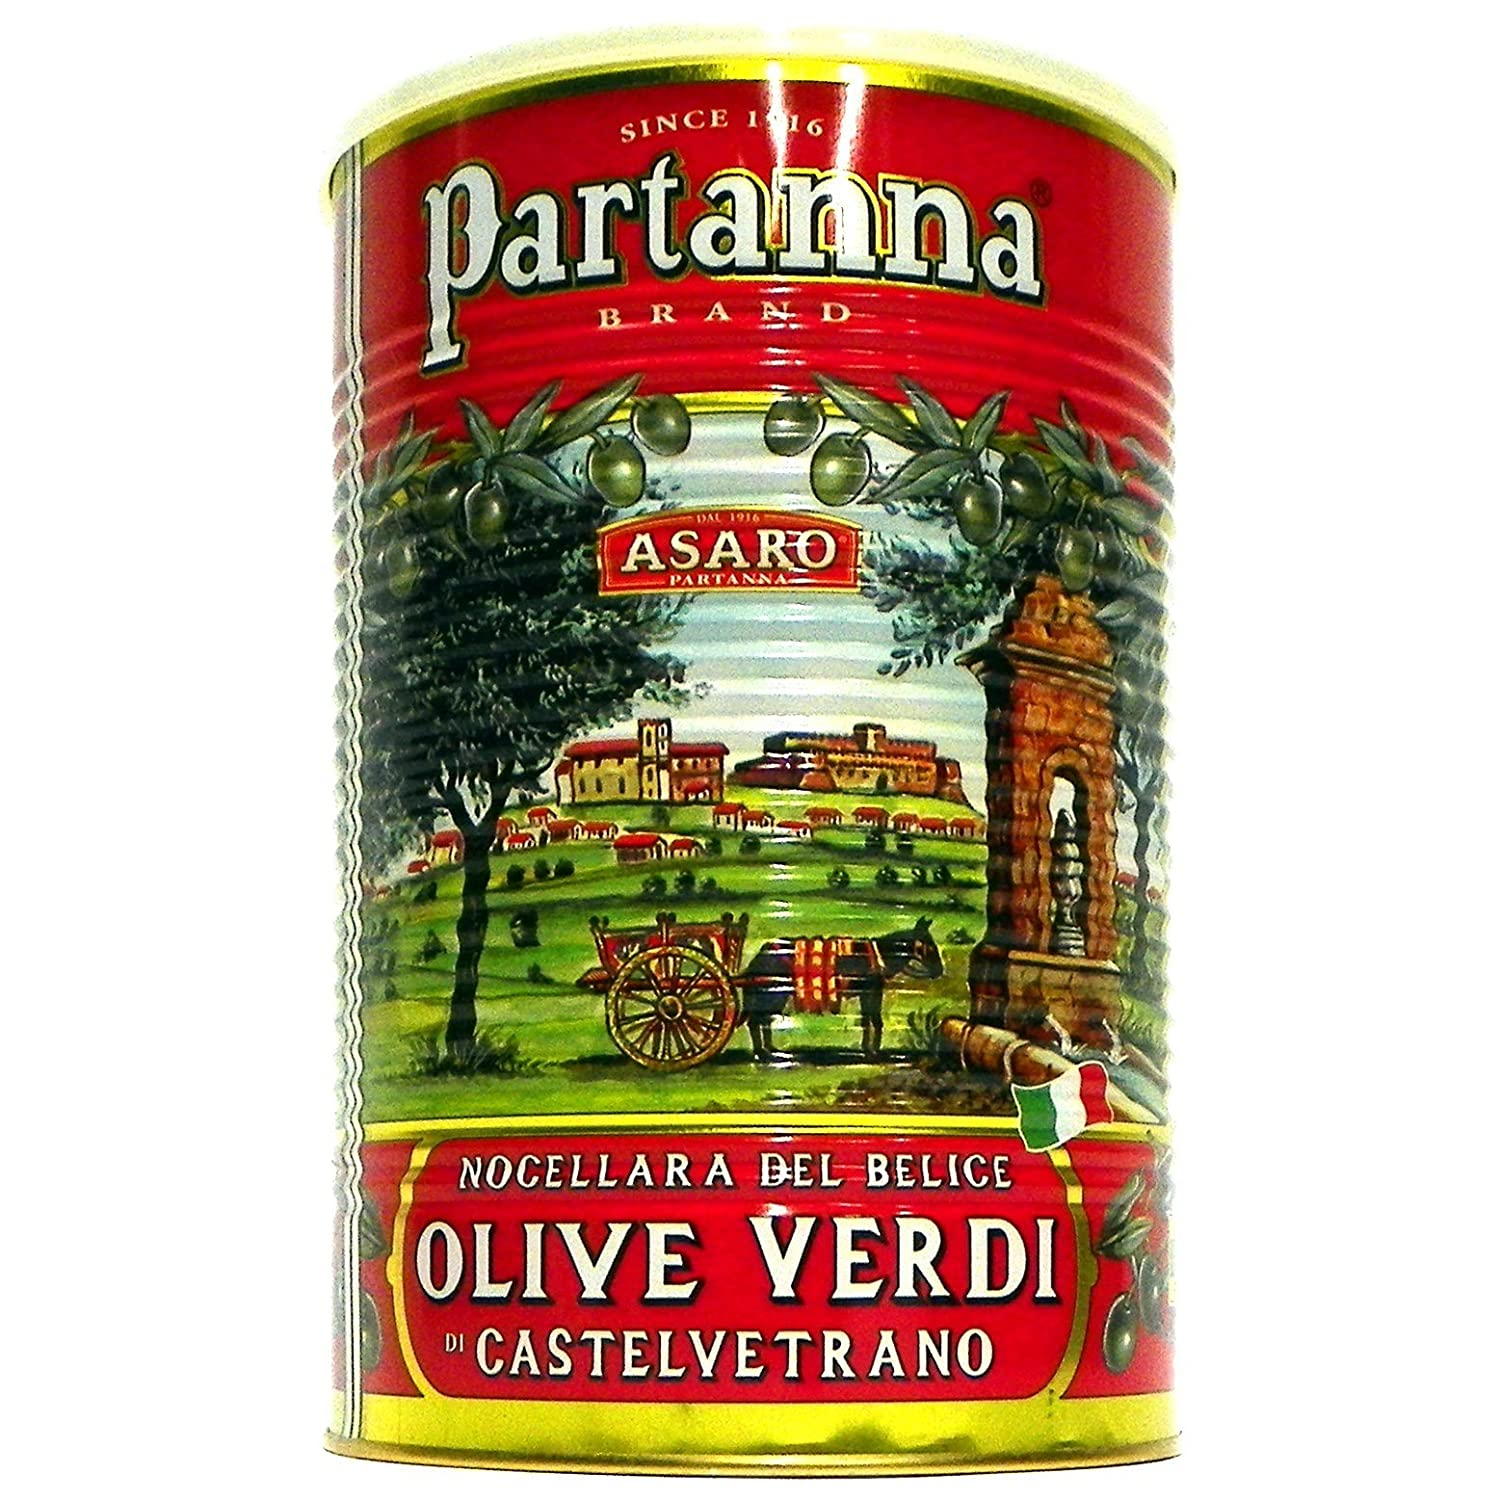 Partanna Premium Select Castelvetrano Olives, Pitted Sicilian Green, 4.4 Pound